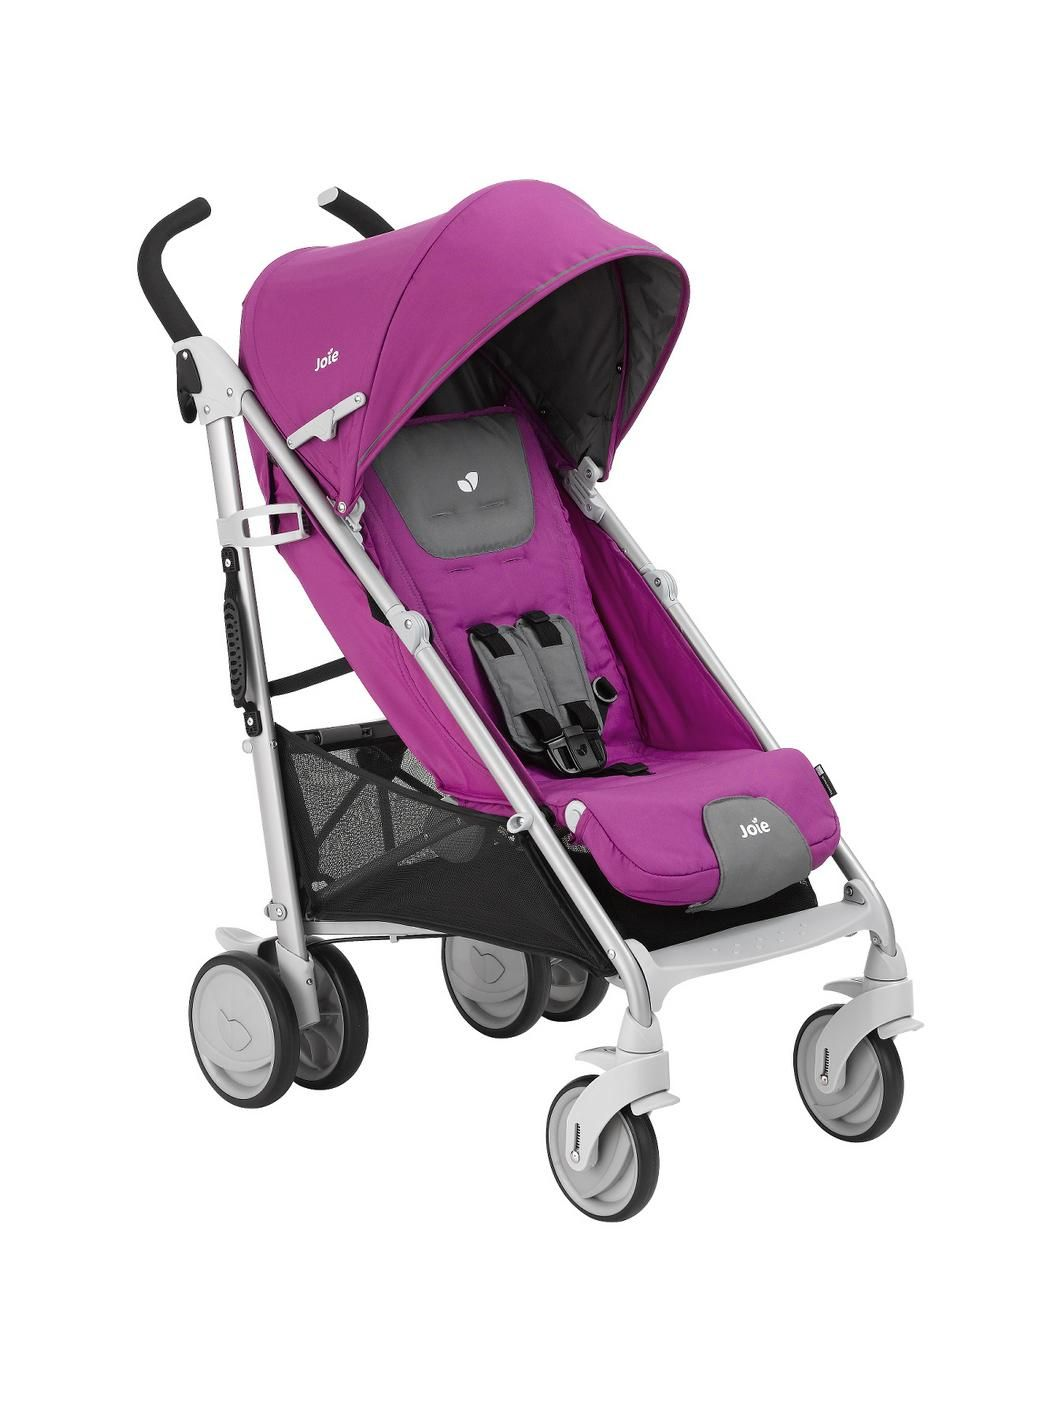 Kinderwagen Joie Official Littlewoods Site Online Shopping Department Store For